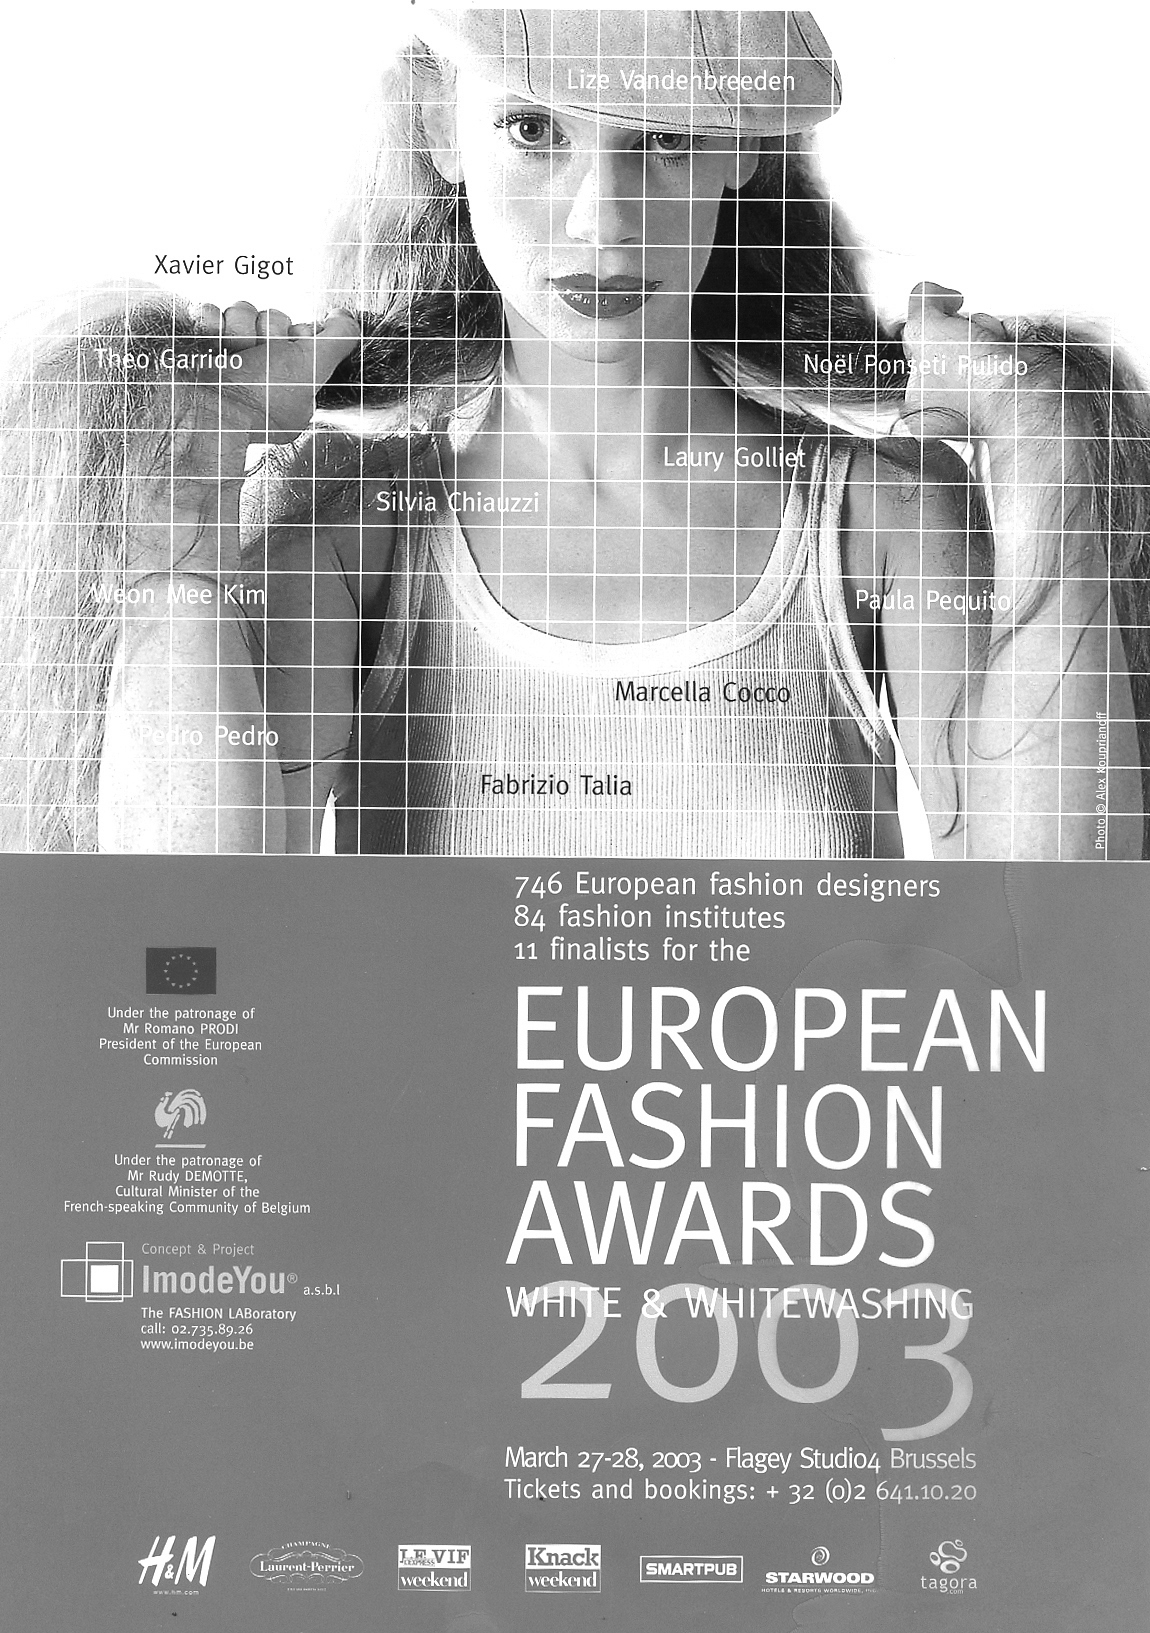 European Fashion Awards 2003